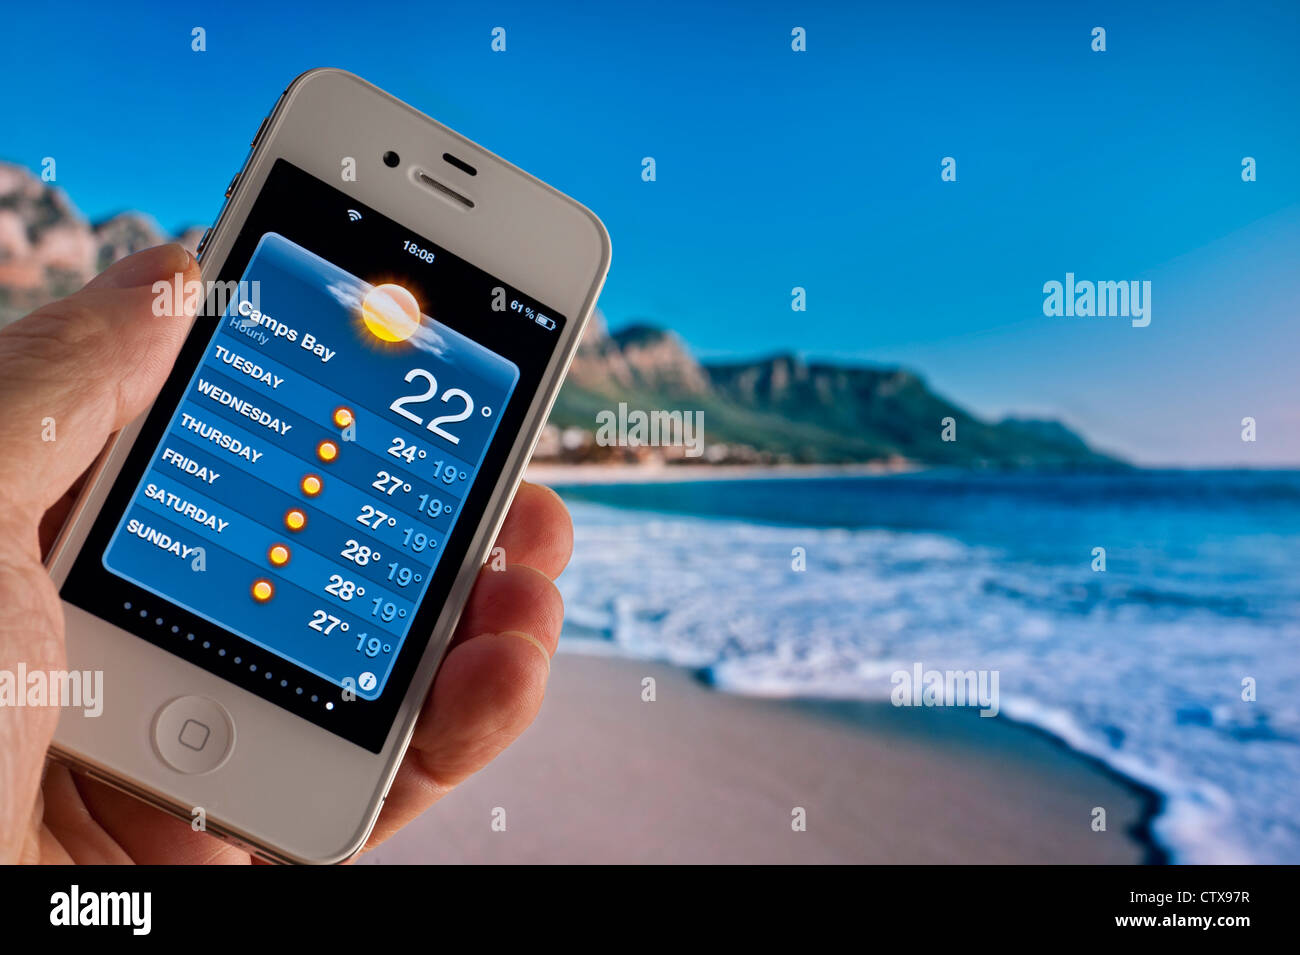 Hand holding white Apple iPhone 4s displaying 22C morning sun on weather forecast application at Camps Bay Capetown - Stock Image